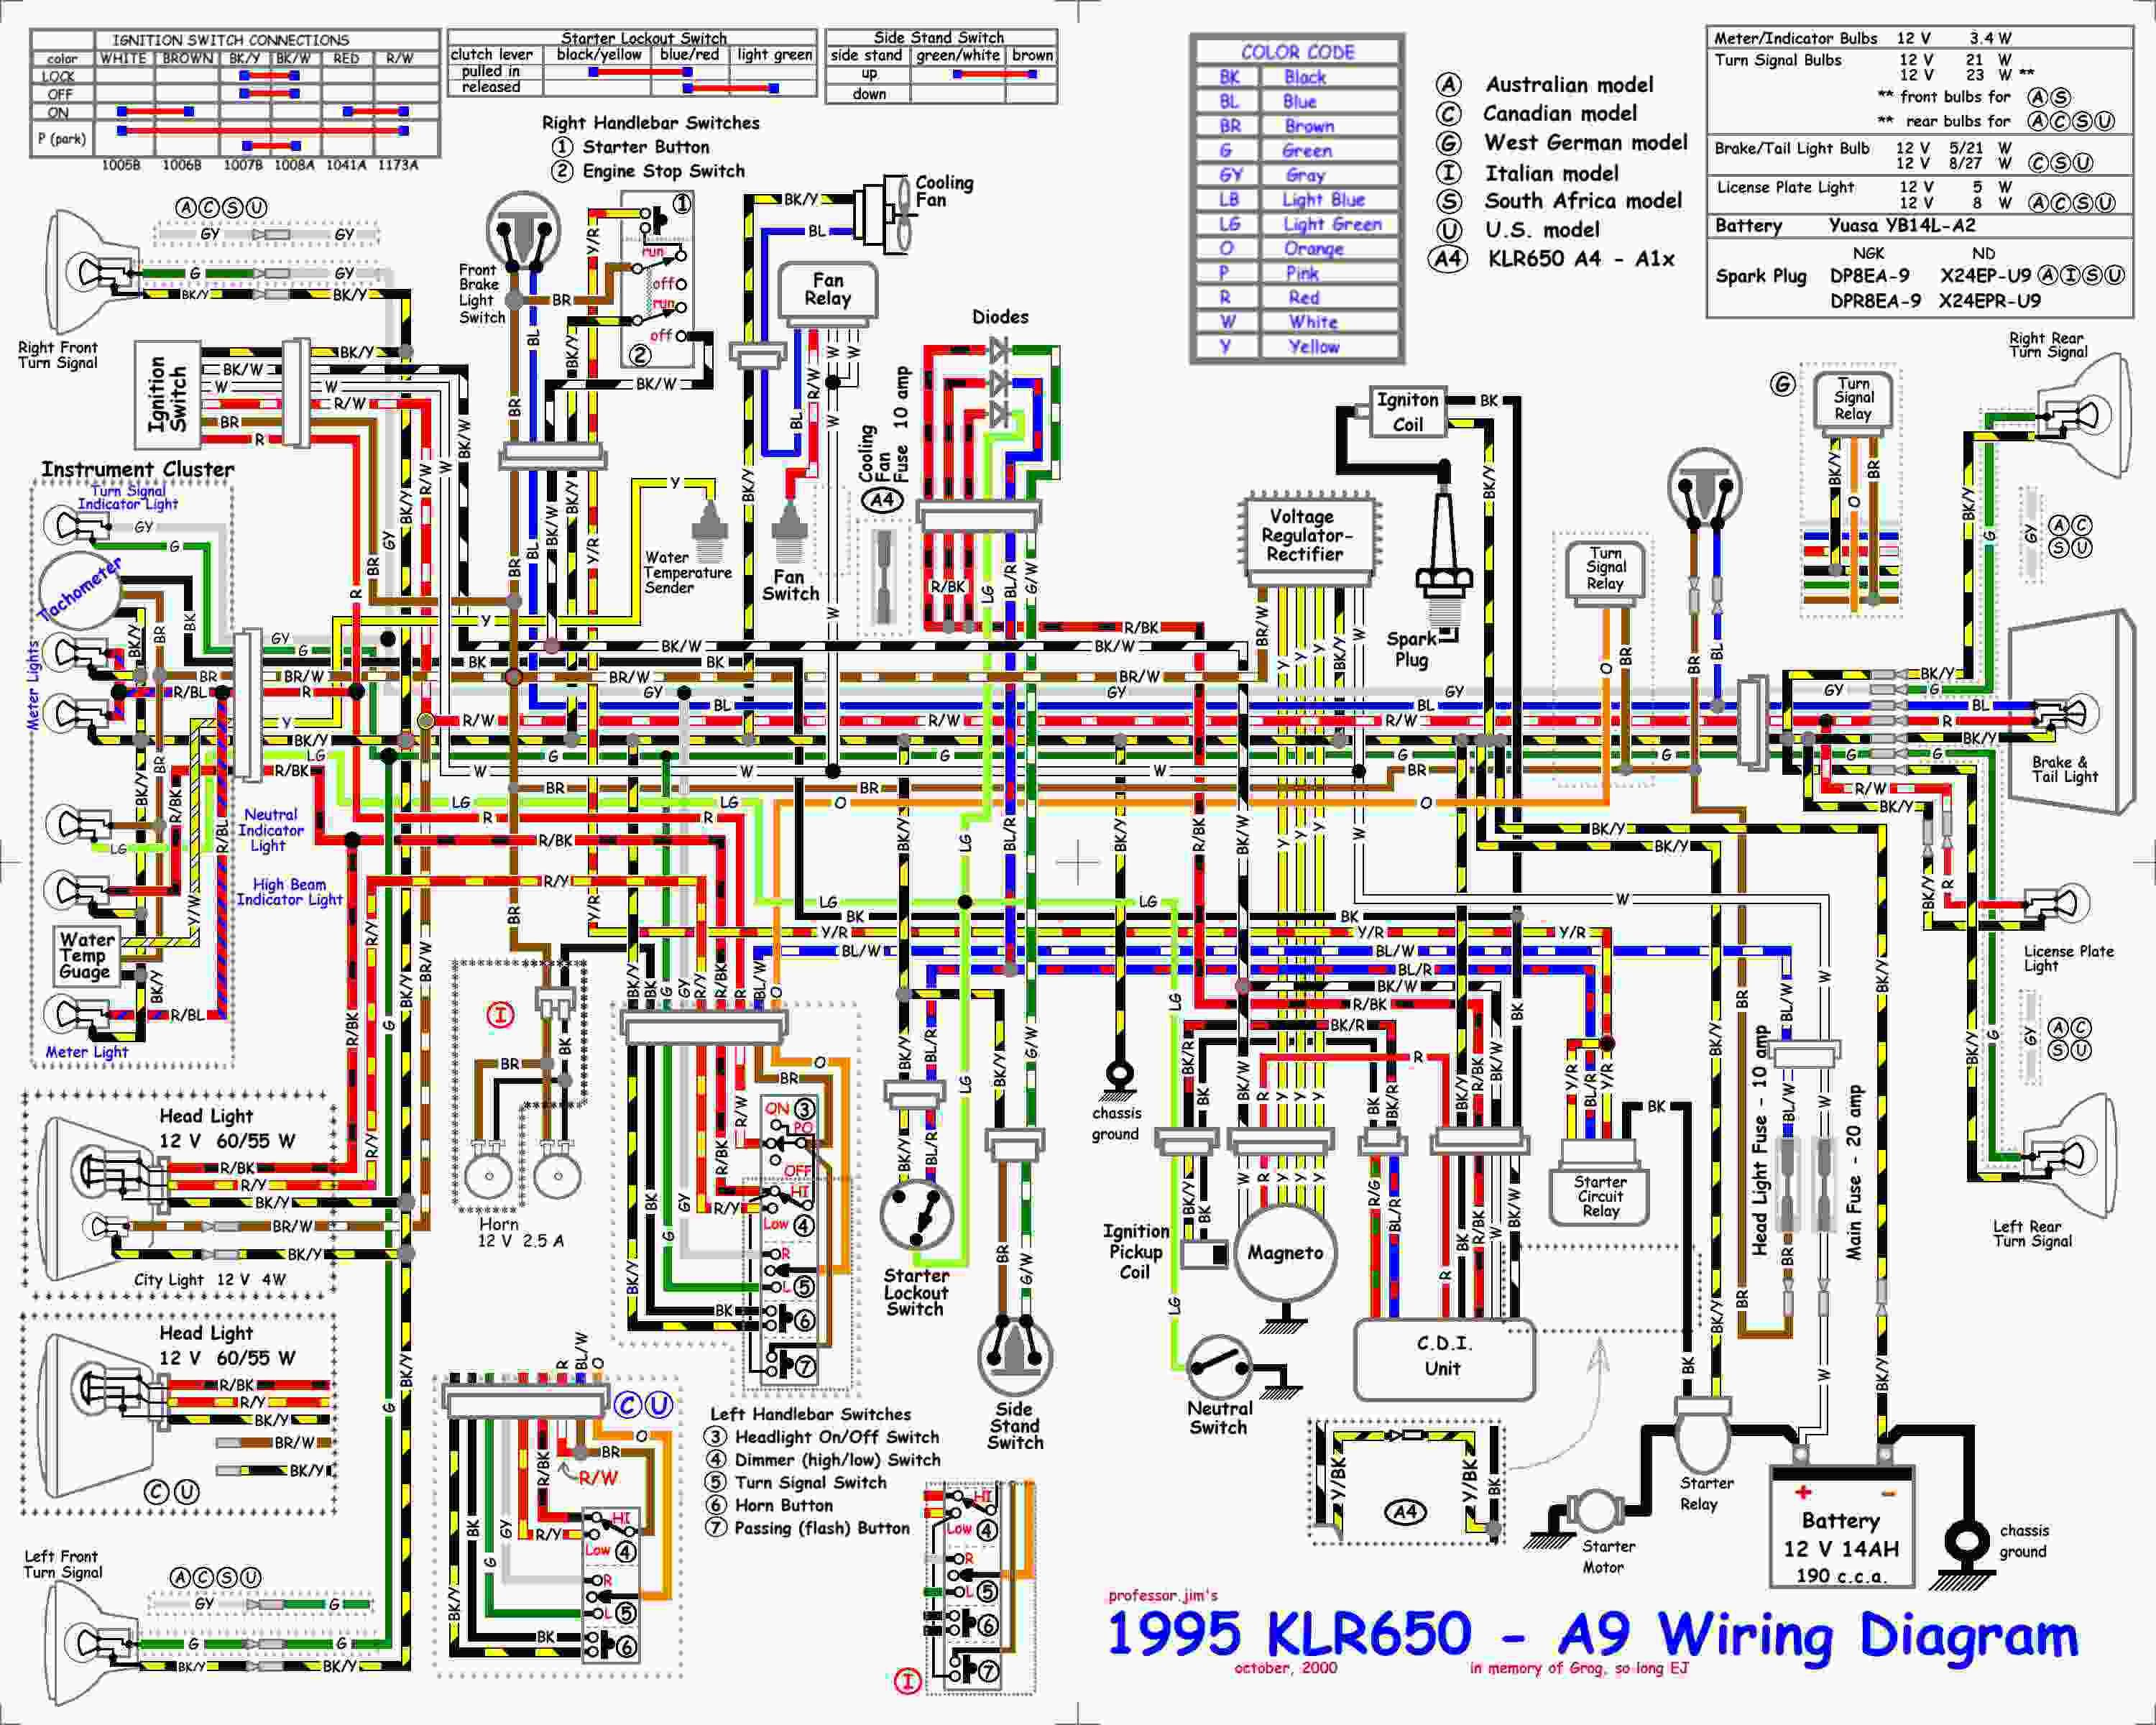 [DIAGRAM_38YU]  M1010 Wiring Diagrams. cucv. image result for cucv wiring diagram  automotive. oem gm chevy blazer m1010 cucv ambulance alternator wiring.  techniek ombouw 24v 12v chaosboyz 4x4. cucv technical info motor mayhem.  alternator | Cucv Alternator Wiring Diagram |  | 2002-acura-tl-radio.info